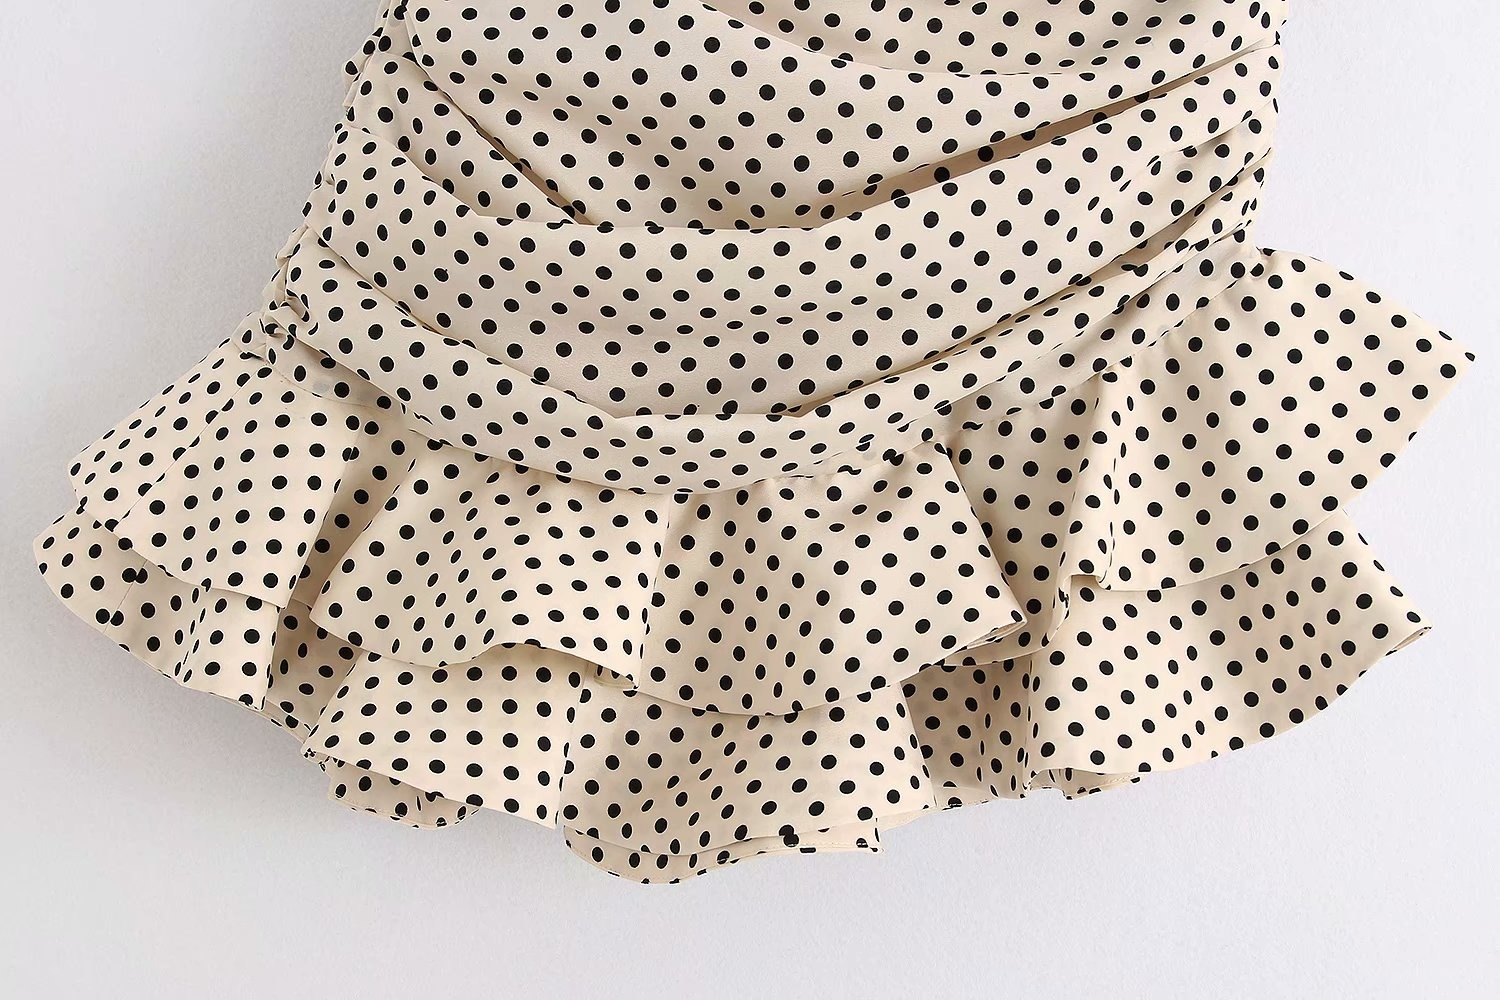 2020 new women summer vanilla polka dot High-waisted mini skirt Ruching detail Ruffled hem Back hidden in-seam zip closure skirt